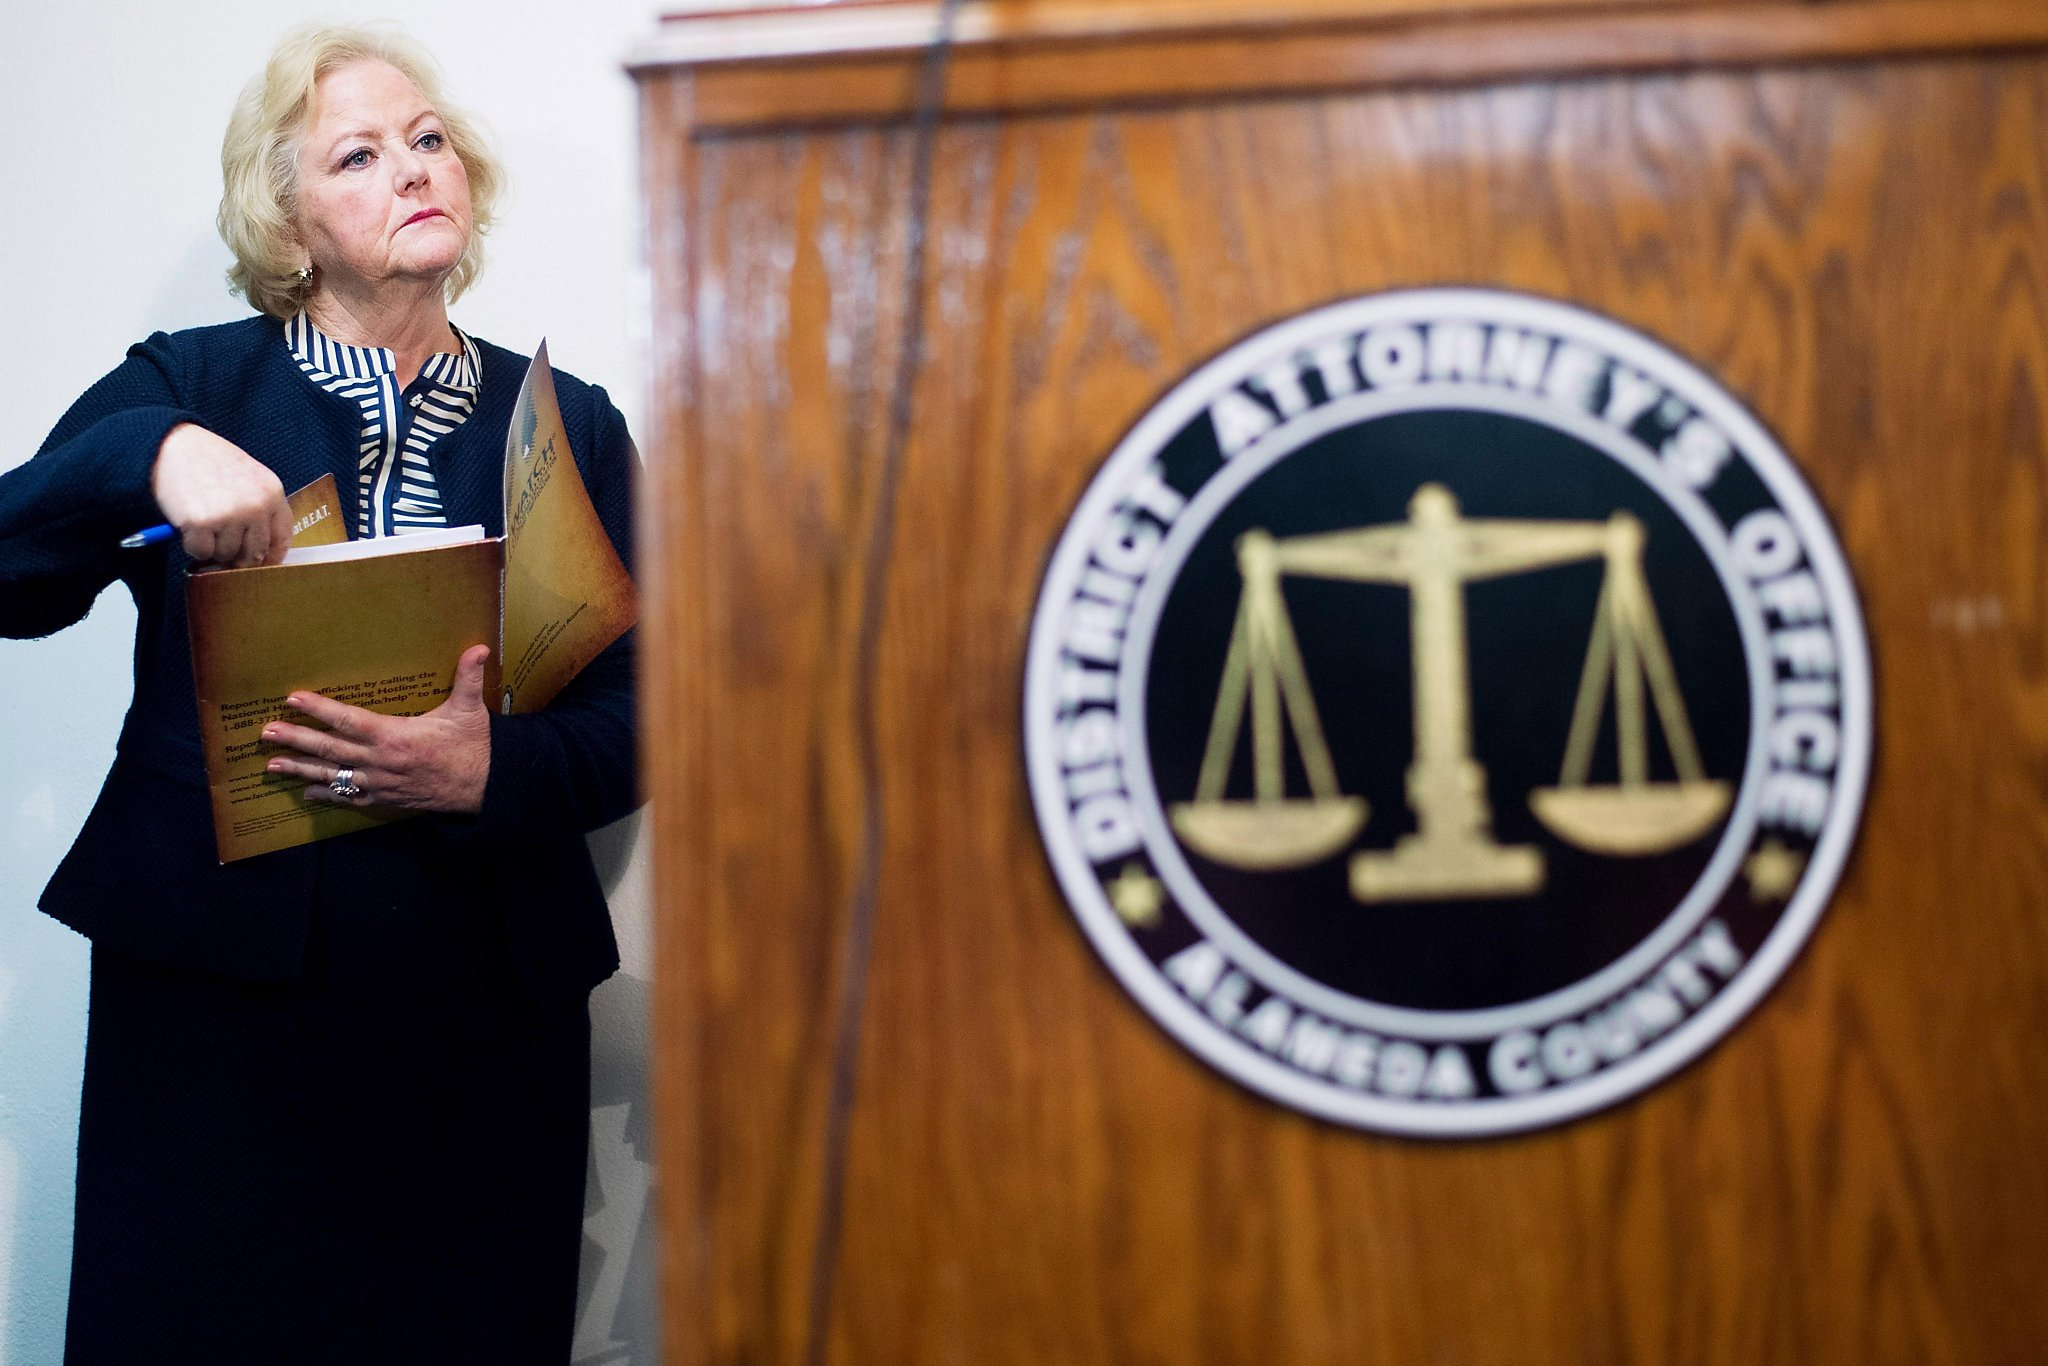 Progressive prosecutor or politician? Alameda County D.A. draws praise, scrutiny after 2 police shooting decisions